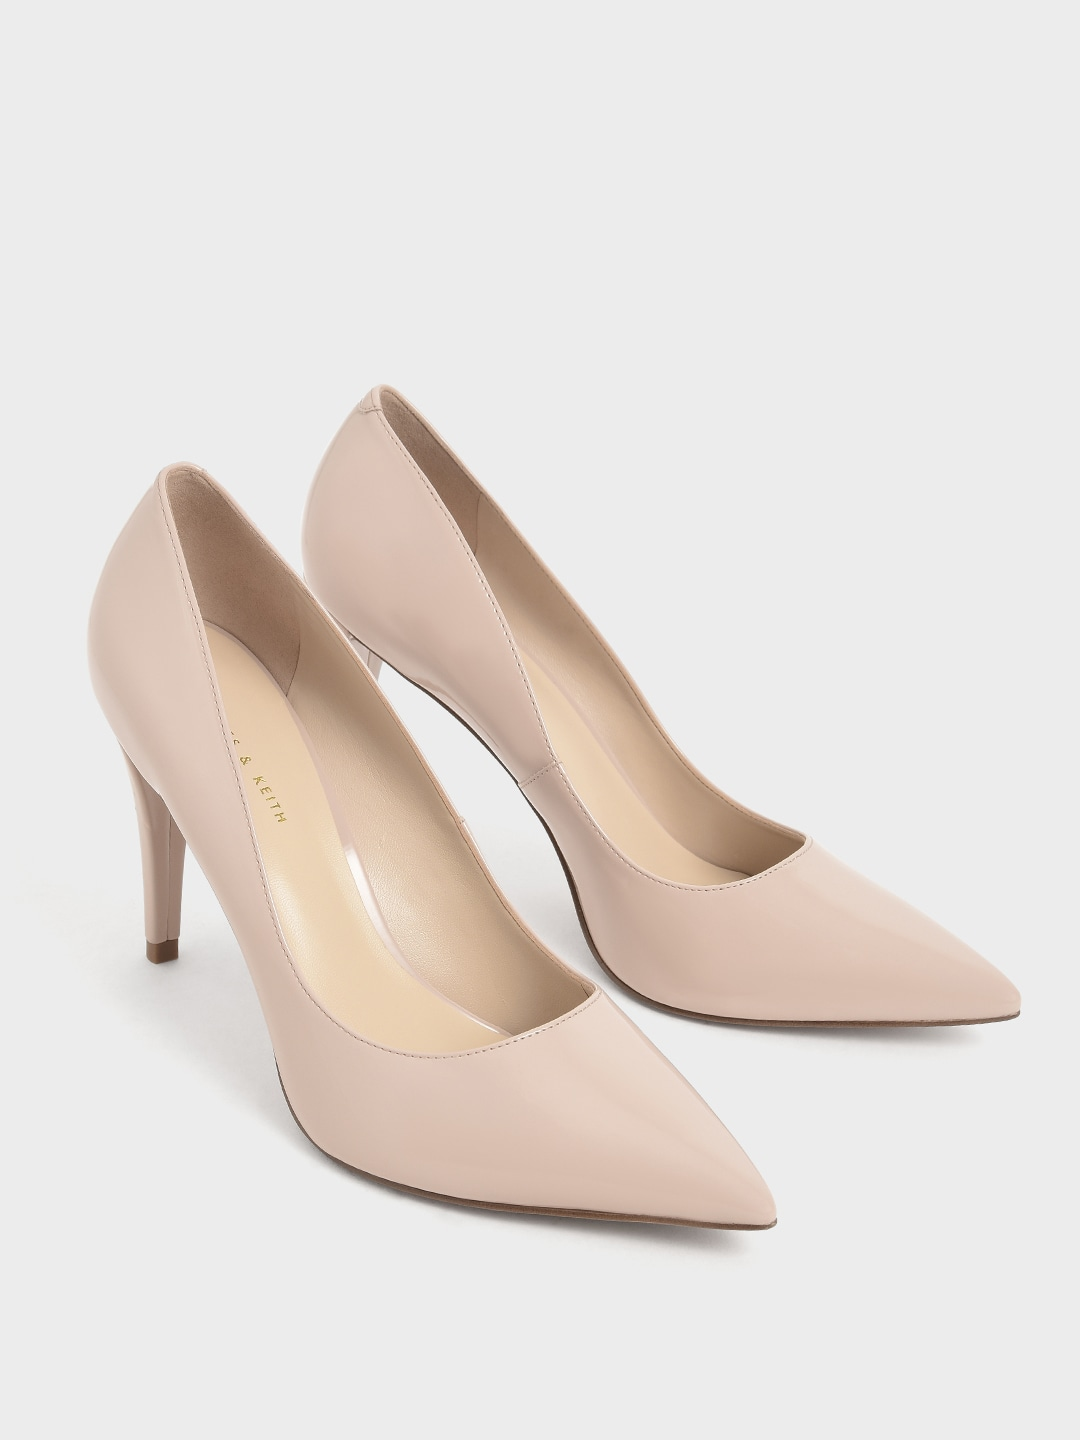 Nude Solid Pumps